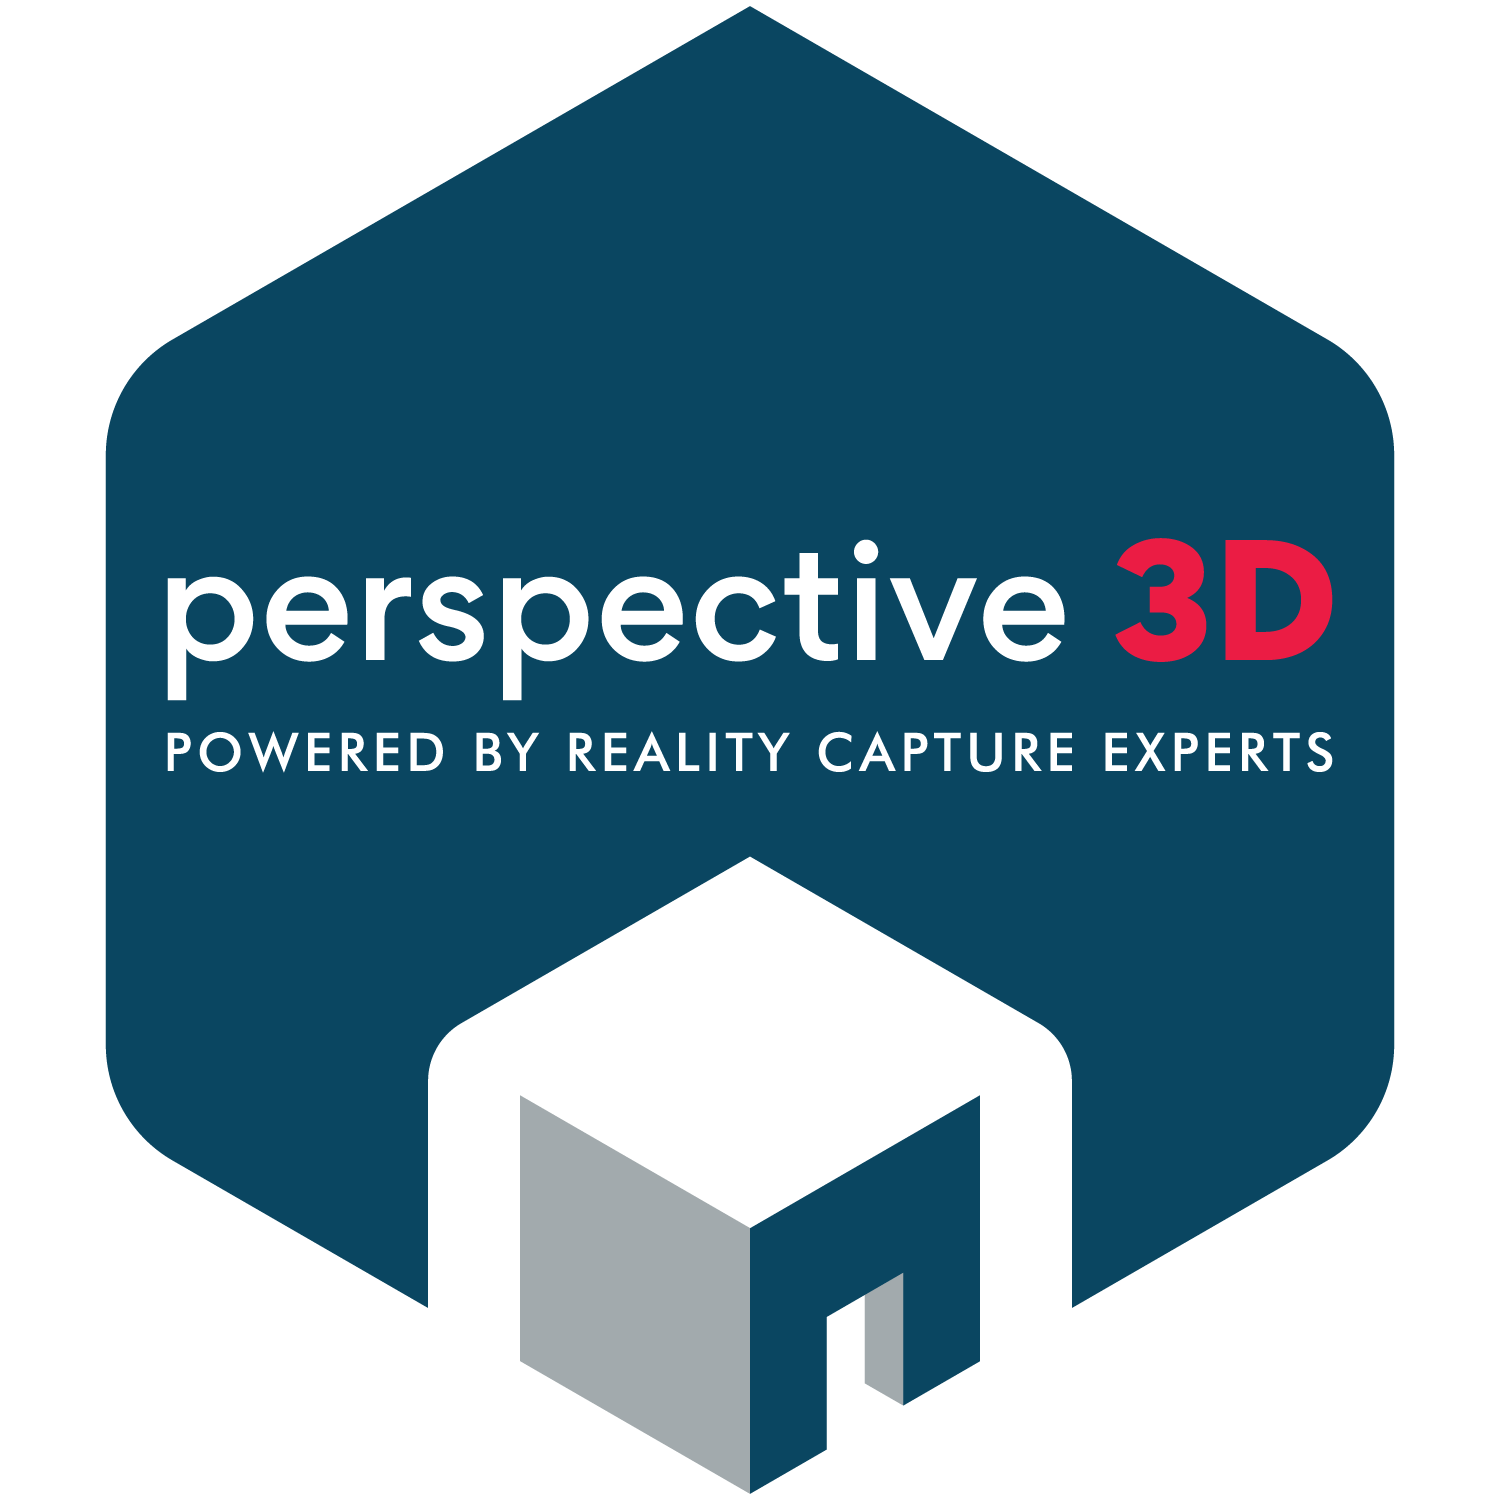 perspective-3d-logo